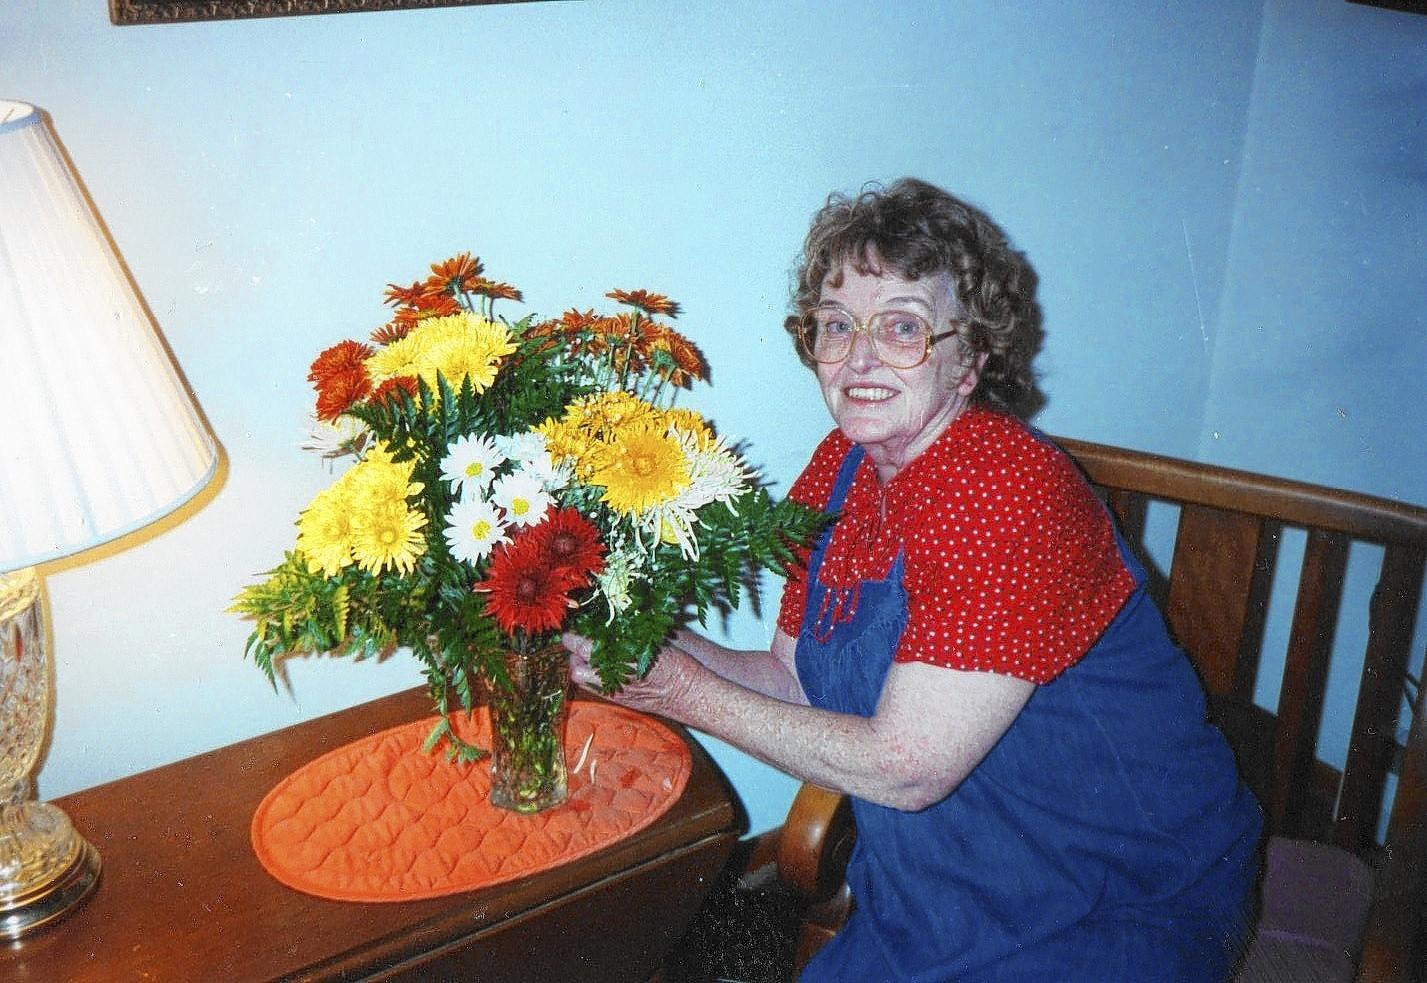 Eileen Donelan died on Jan. 26 at the age of 87. She made it her life's purpose to help those in need.